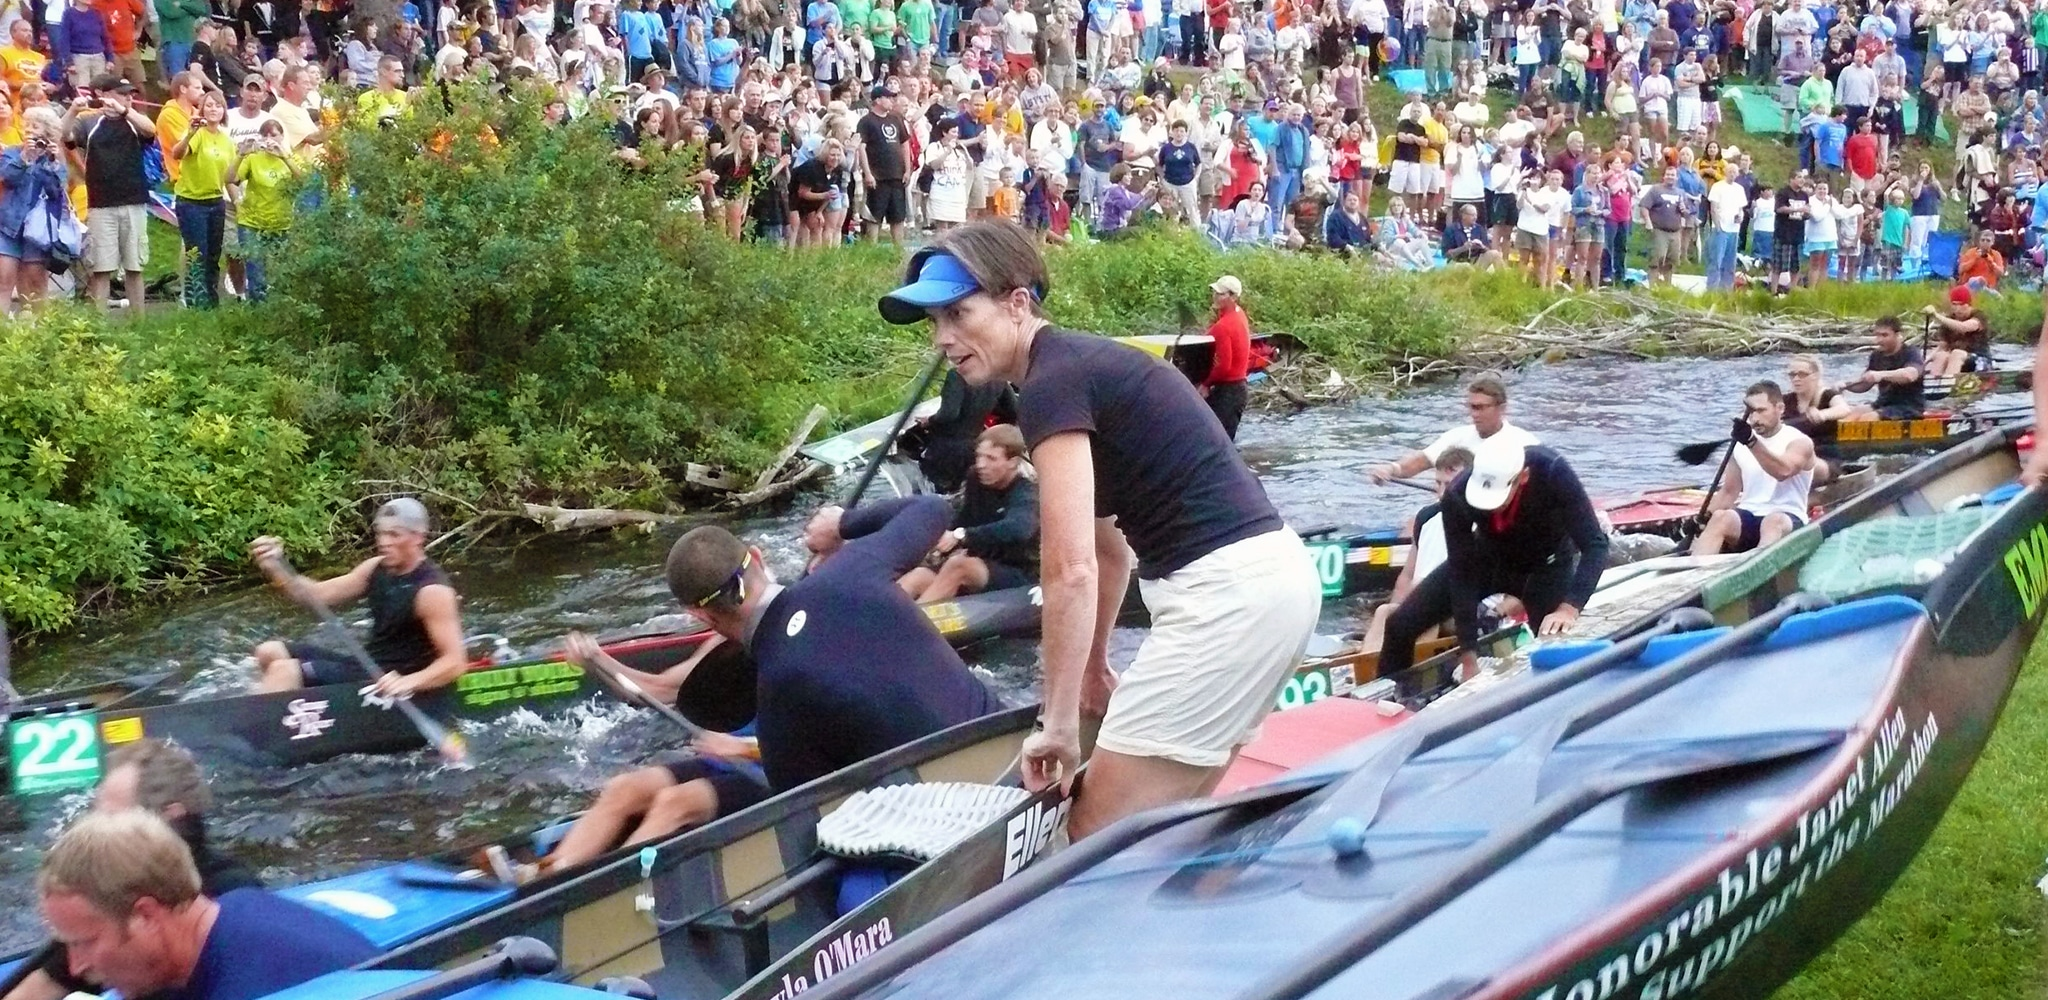 AuSable River Festival July 20 - July 28